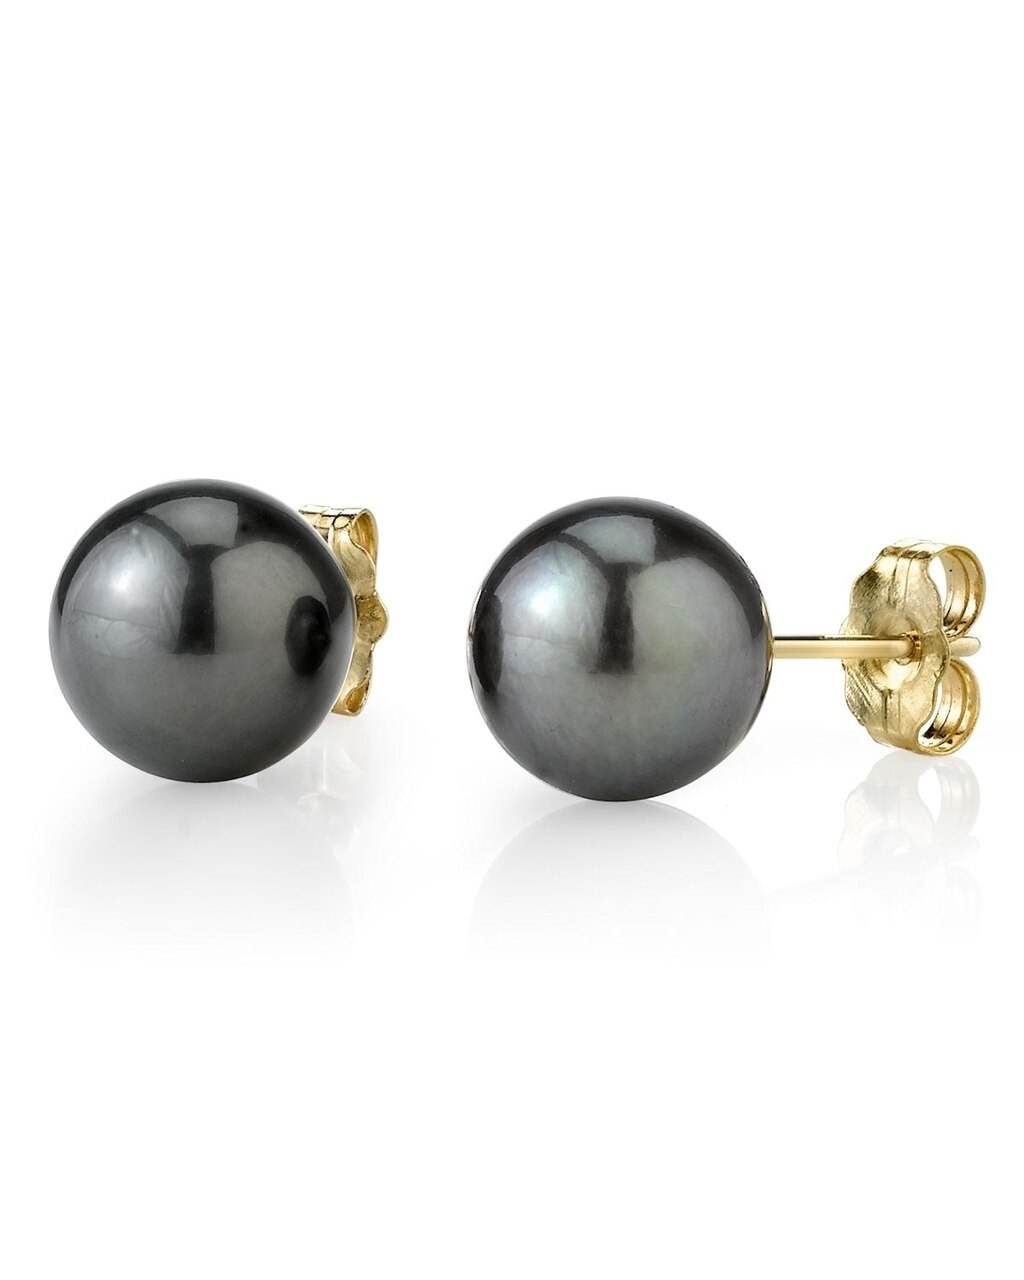 Classic stud earrings feature two 8.0-9.0mm  Tahitian South Sea pearls, selected for their luminous luster